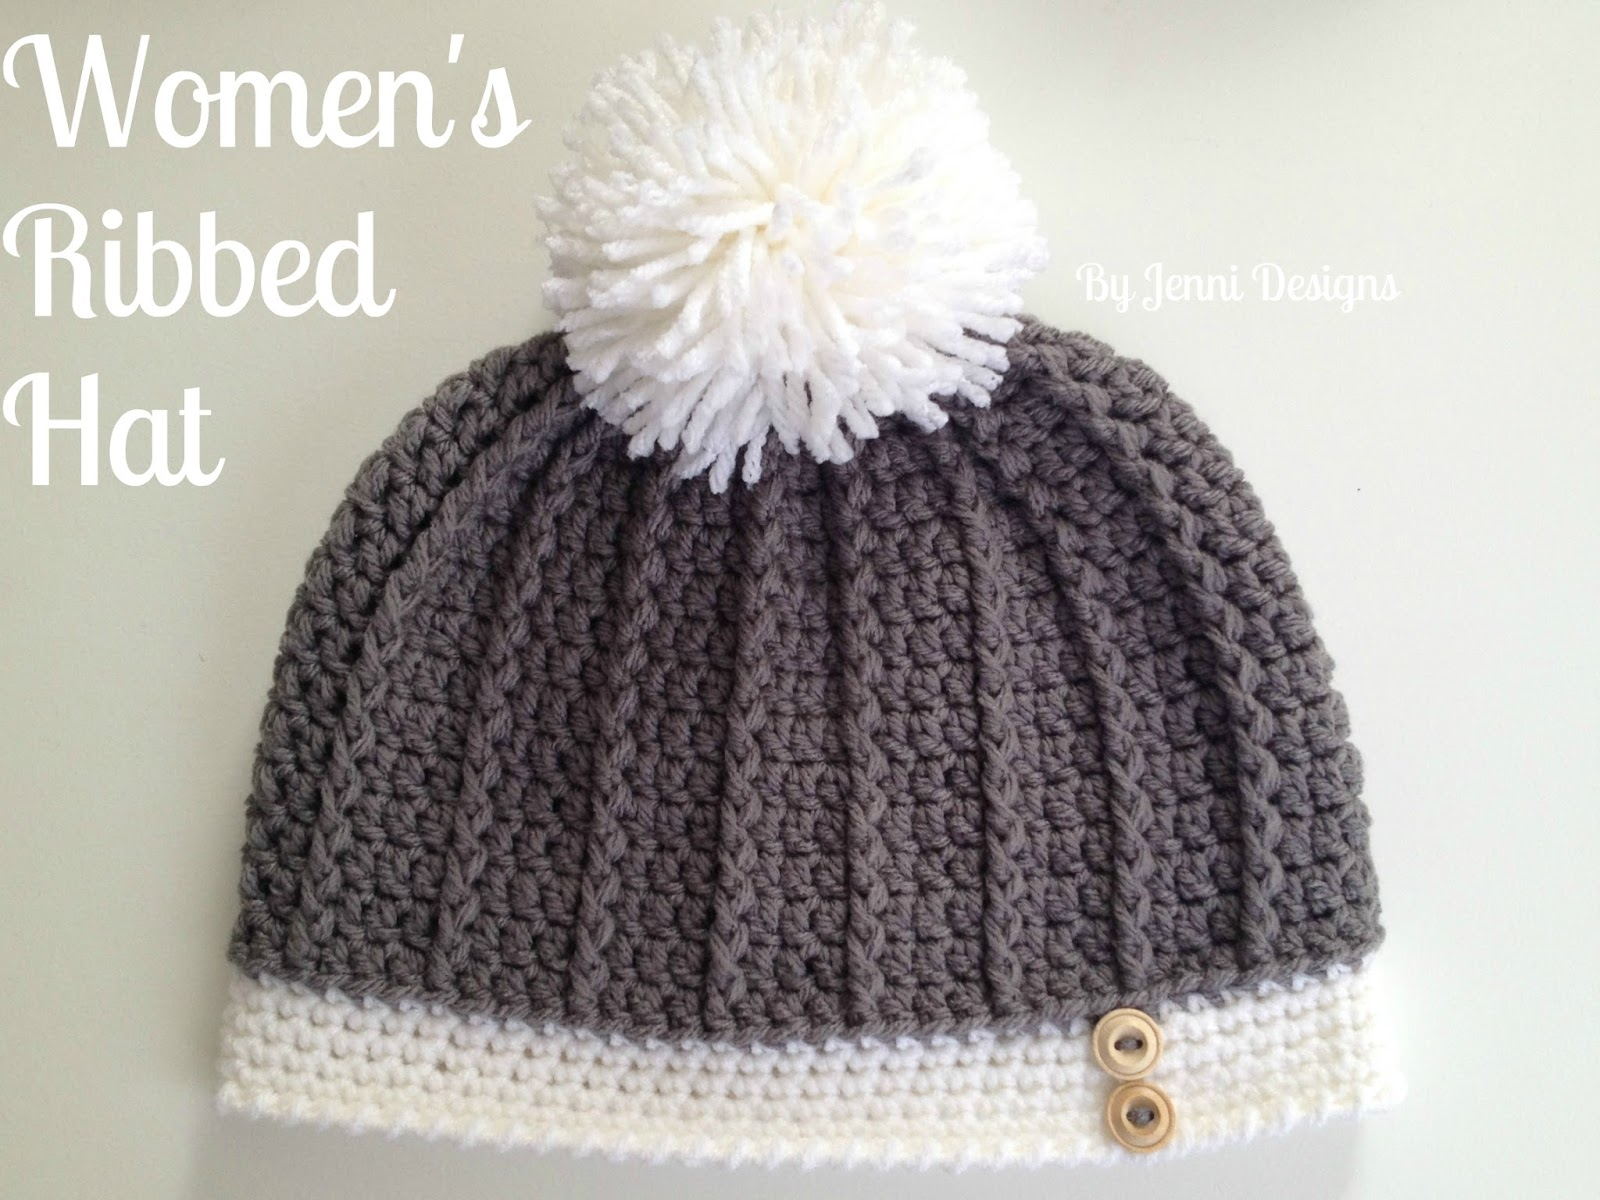 0a0c7ad34eb By Jenni Designs  Free Crochet Pattern  Women s Ribbed Hat